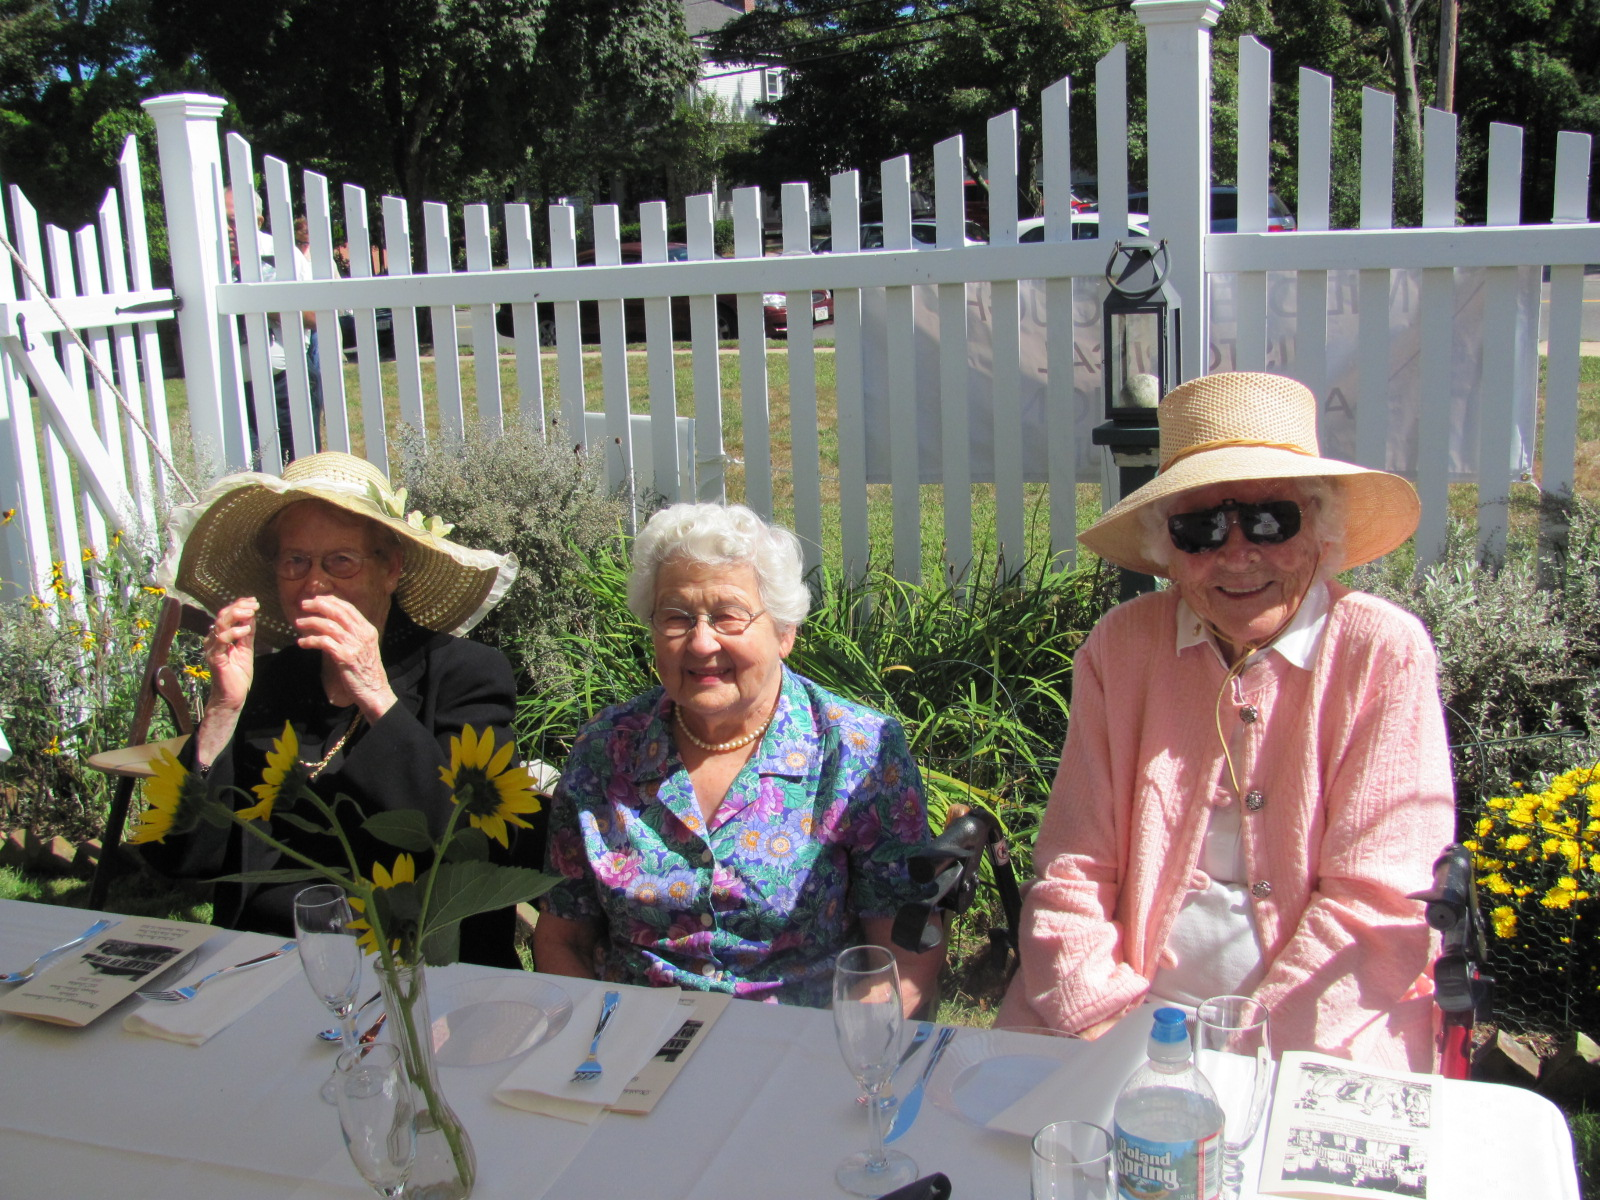 Historical_Society_Garden_Party_2013_--_Yvonne_Wright,_Marion_Cowan,_and_Grace_Shaw.jpg